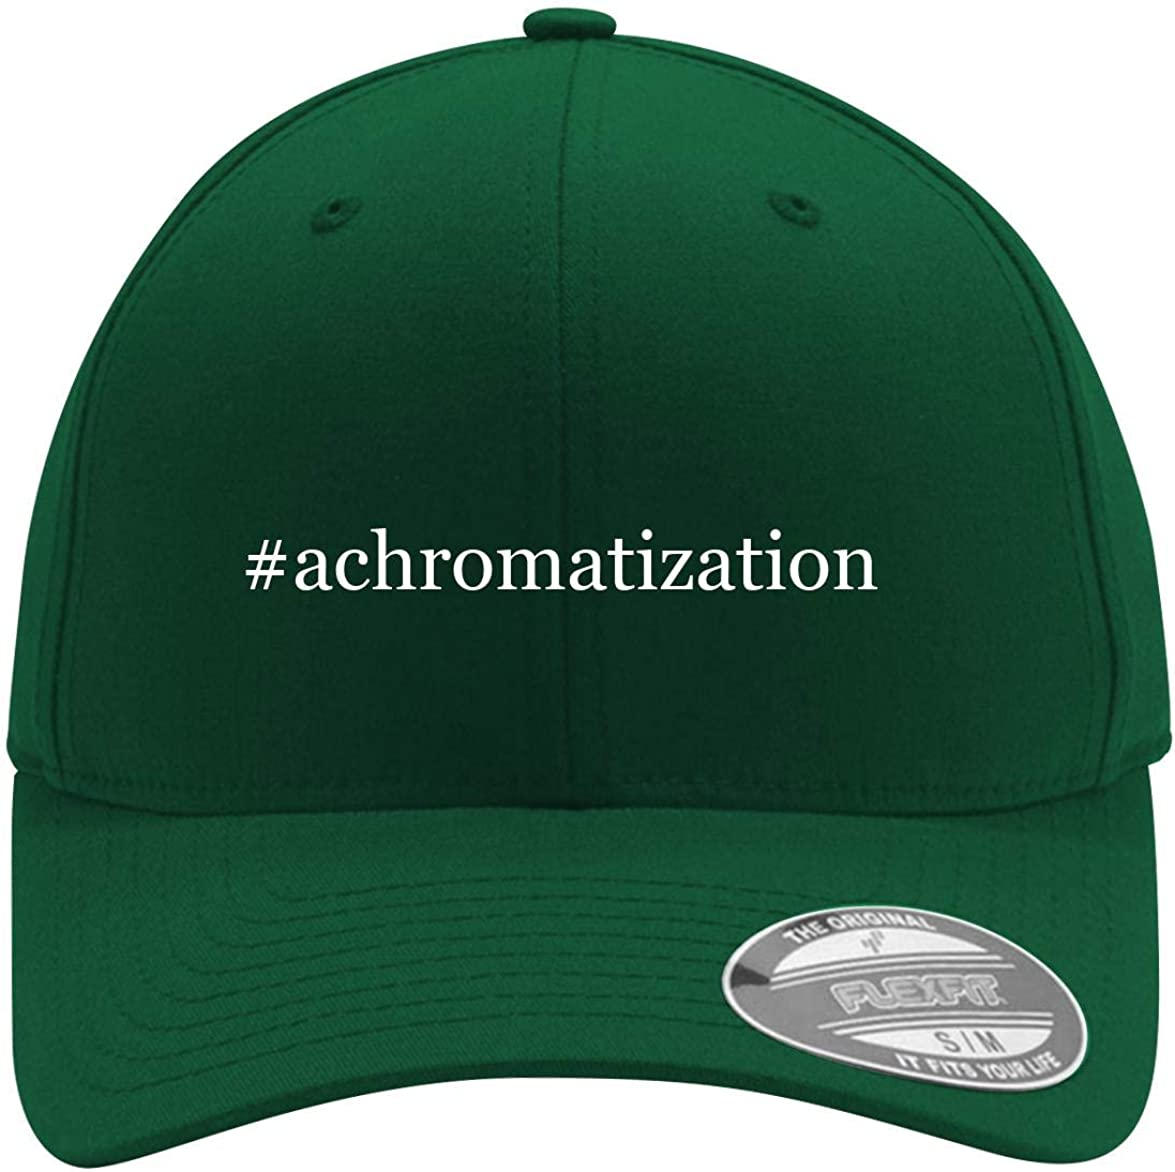 #achromatization - Adult Men's Hashtag Flexfit Baseball Hat Cap 61etL4cDMFL